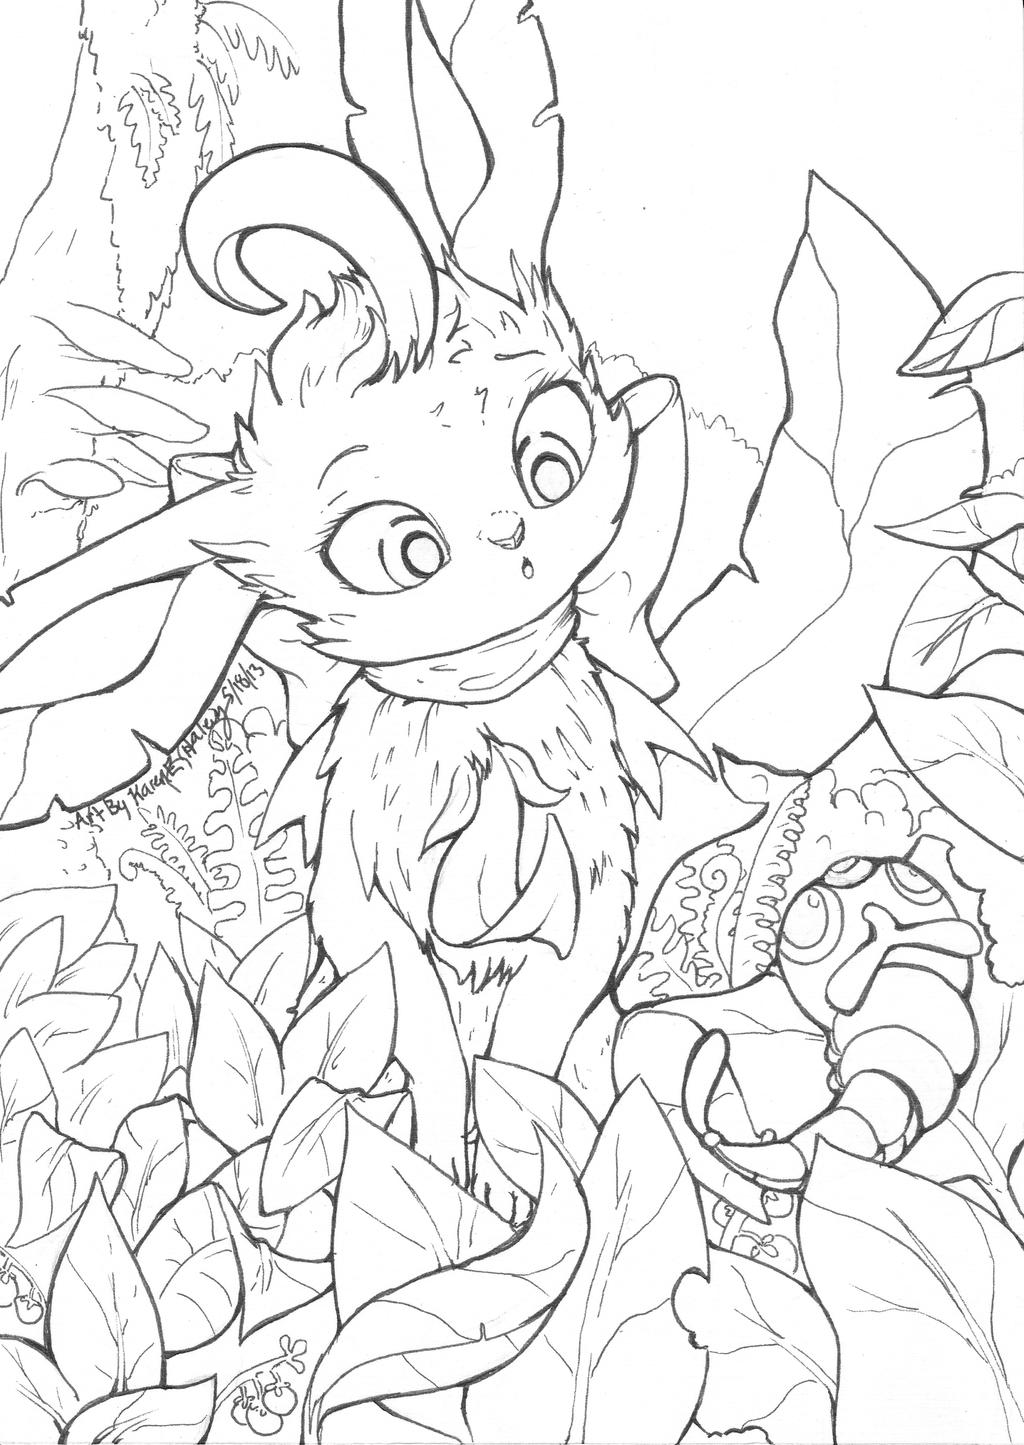 leafeon coloring pages leafeon line art crazycomiclady commission by karookachoo leafeon coloring pages